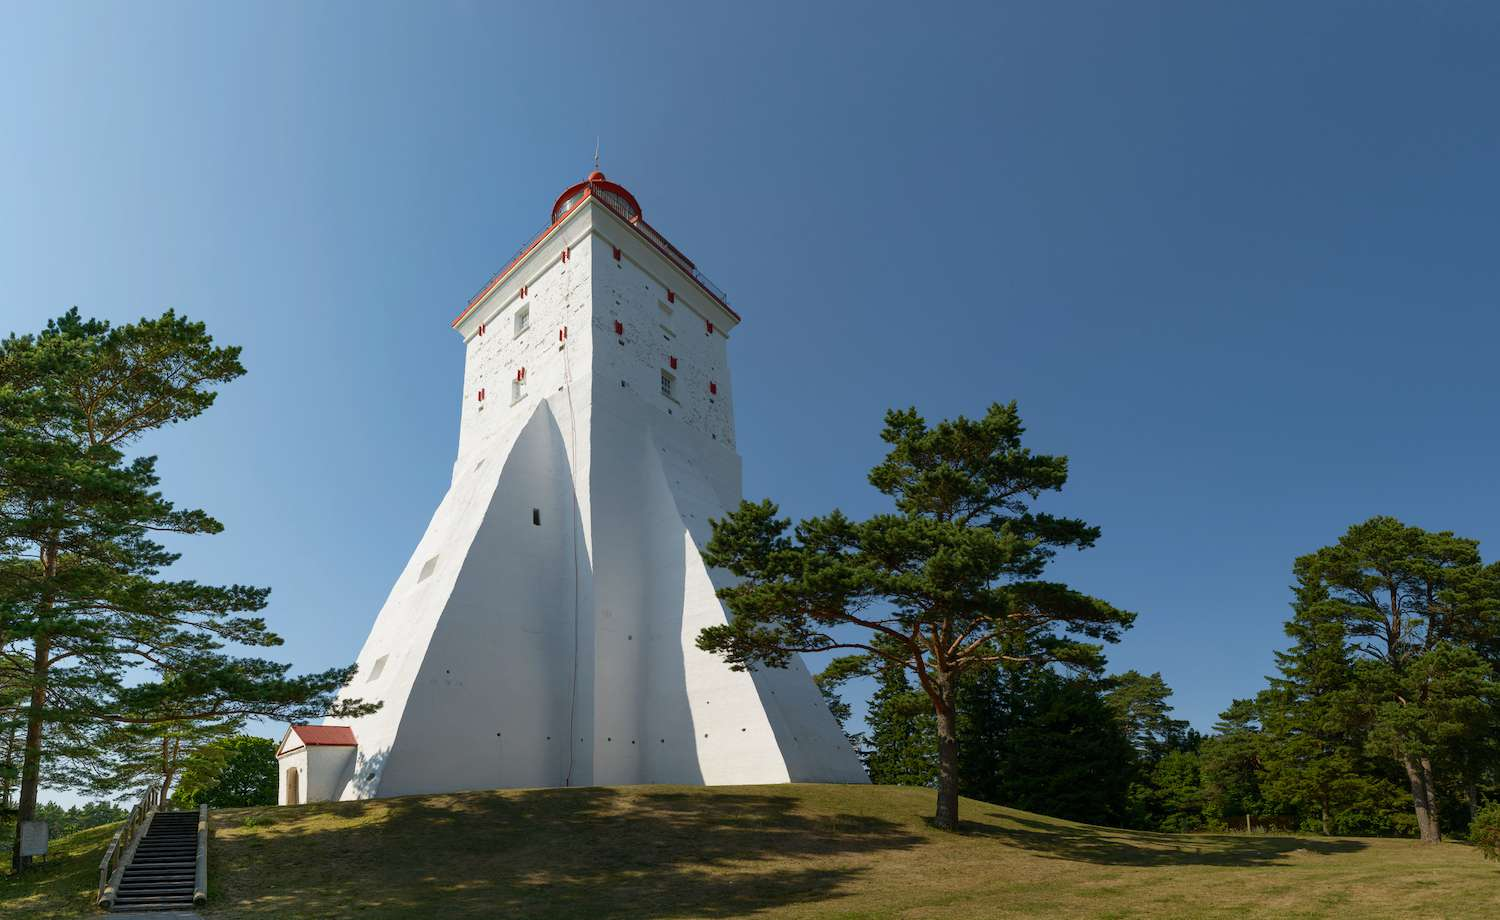 Looking up towards the Kõpu Lighthouse in Estonia on a clear day